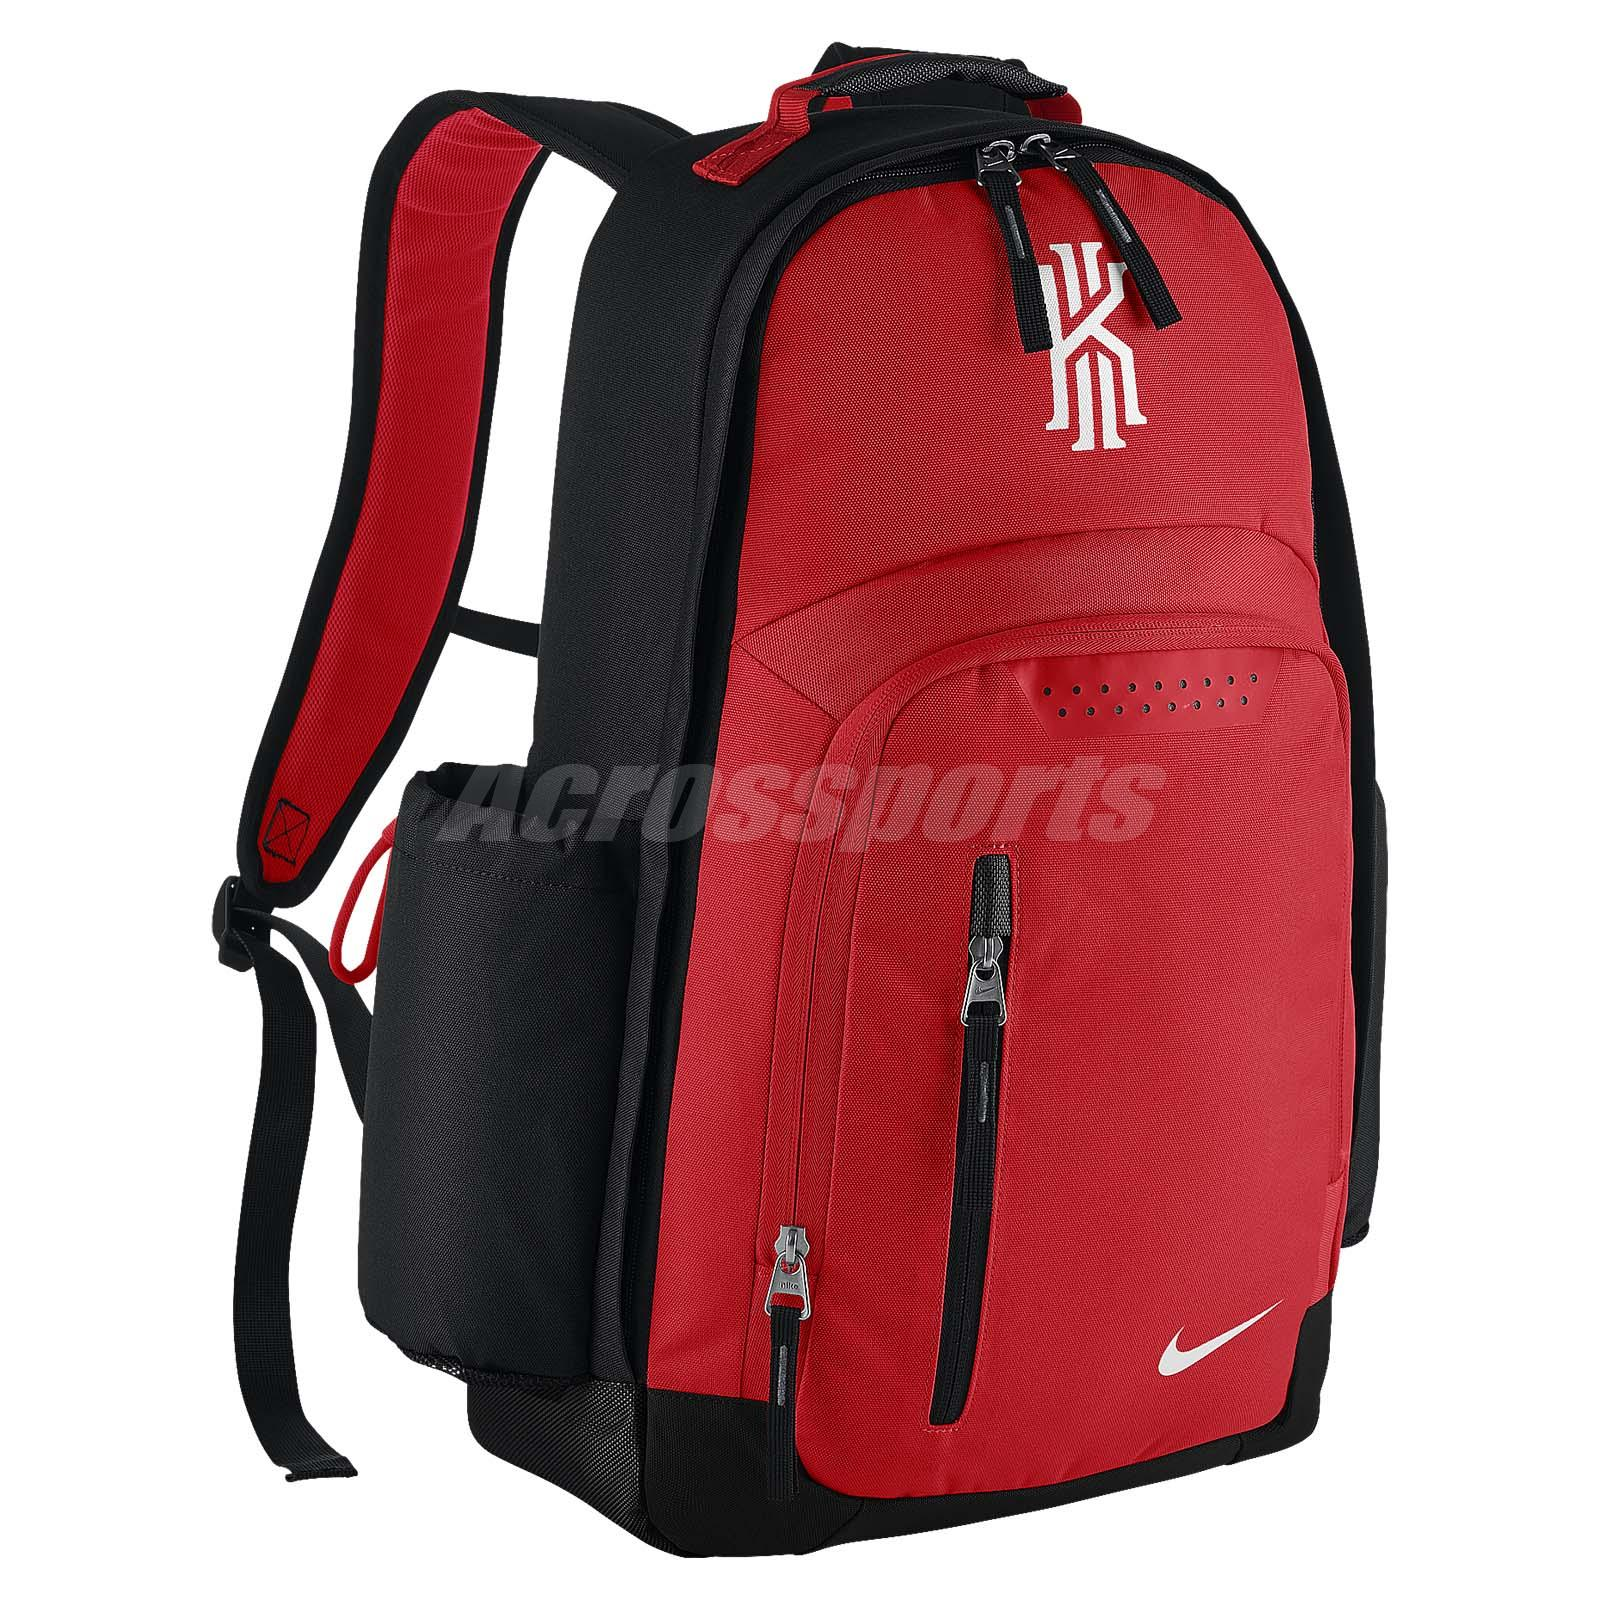 67e58e1fa3d1 kyrie irving backpack cheap   OFF73% The Largest Catalog Discounts